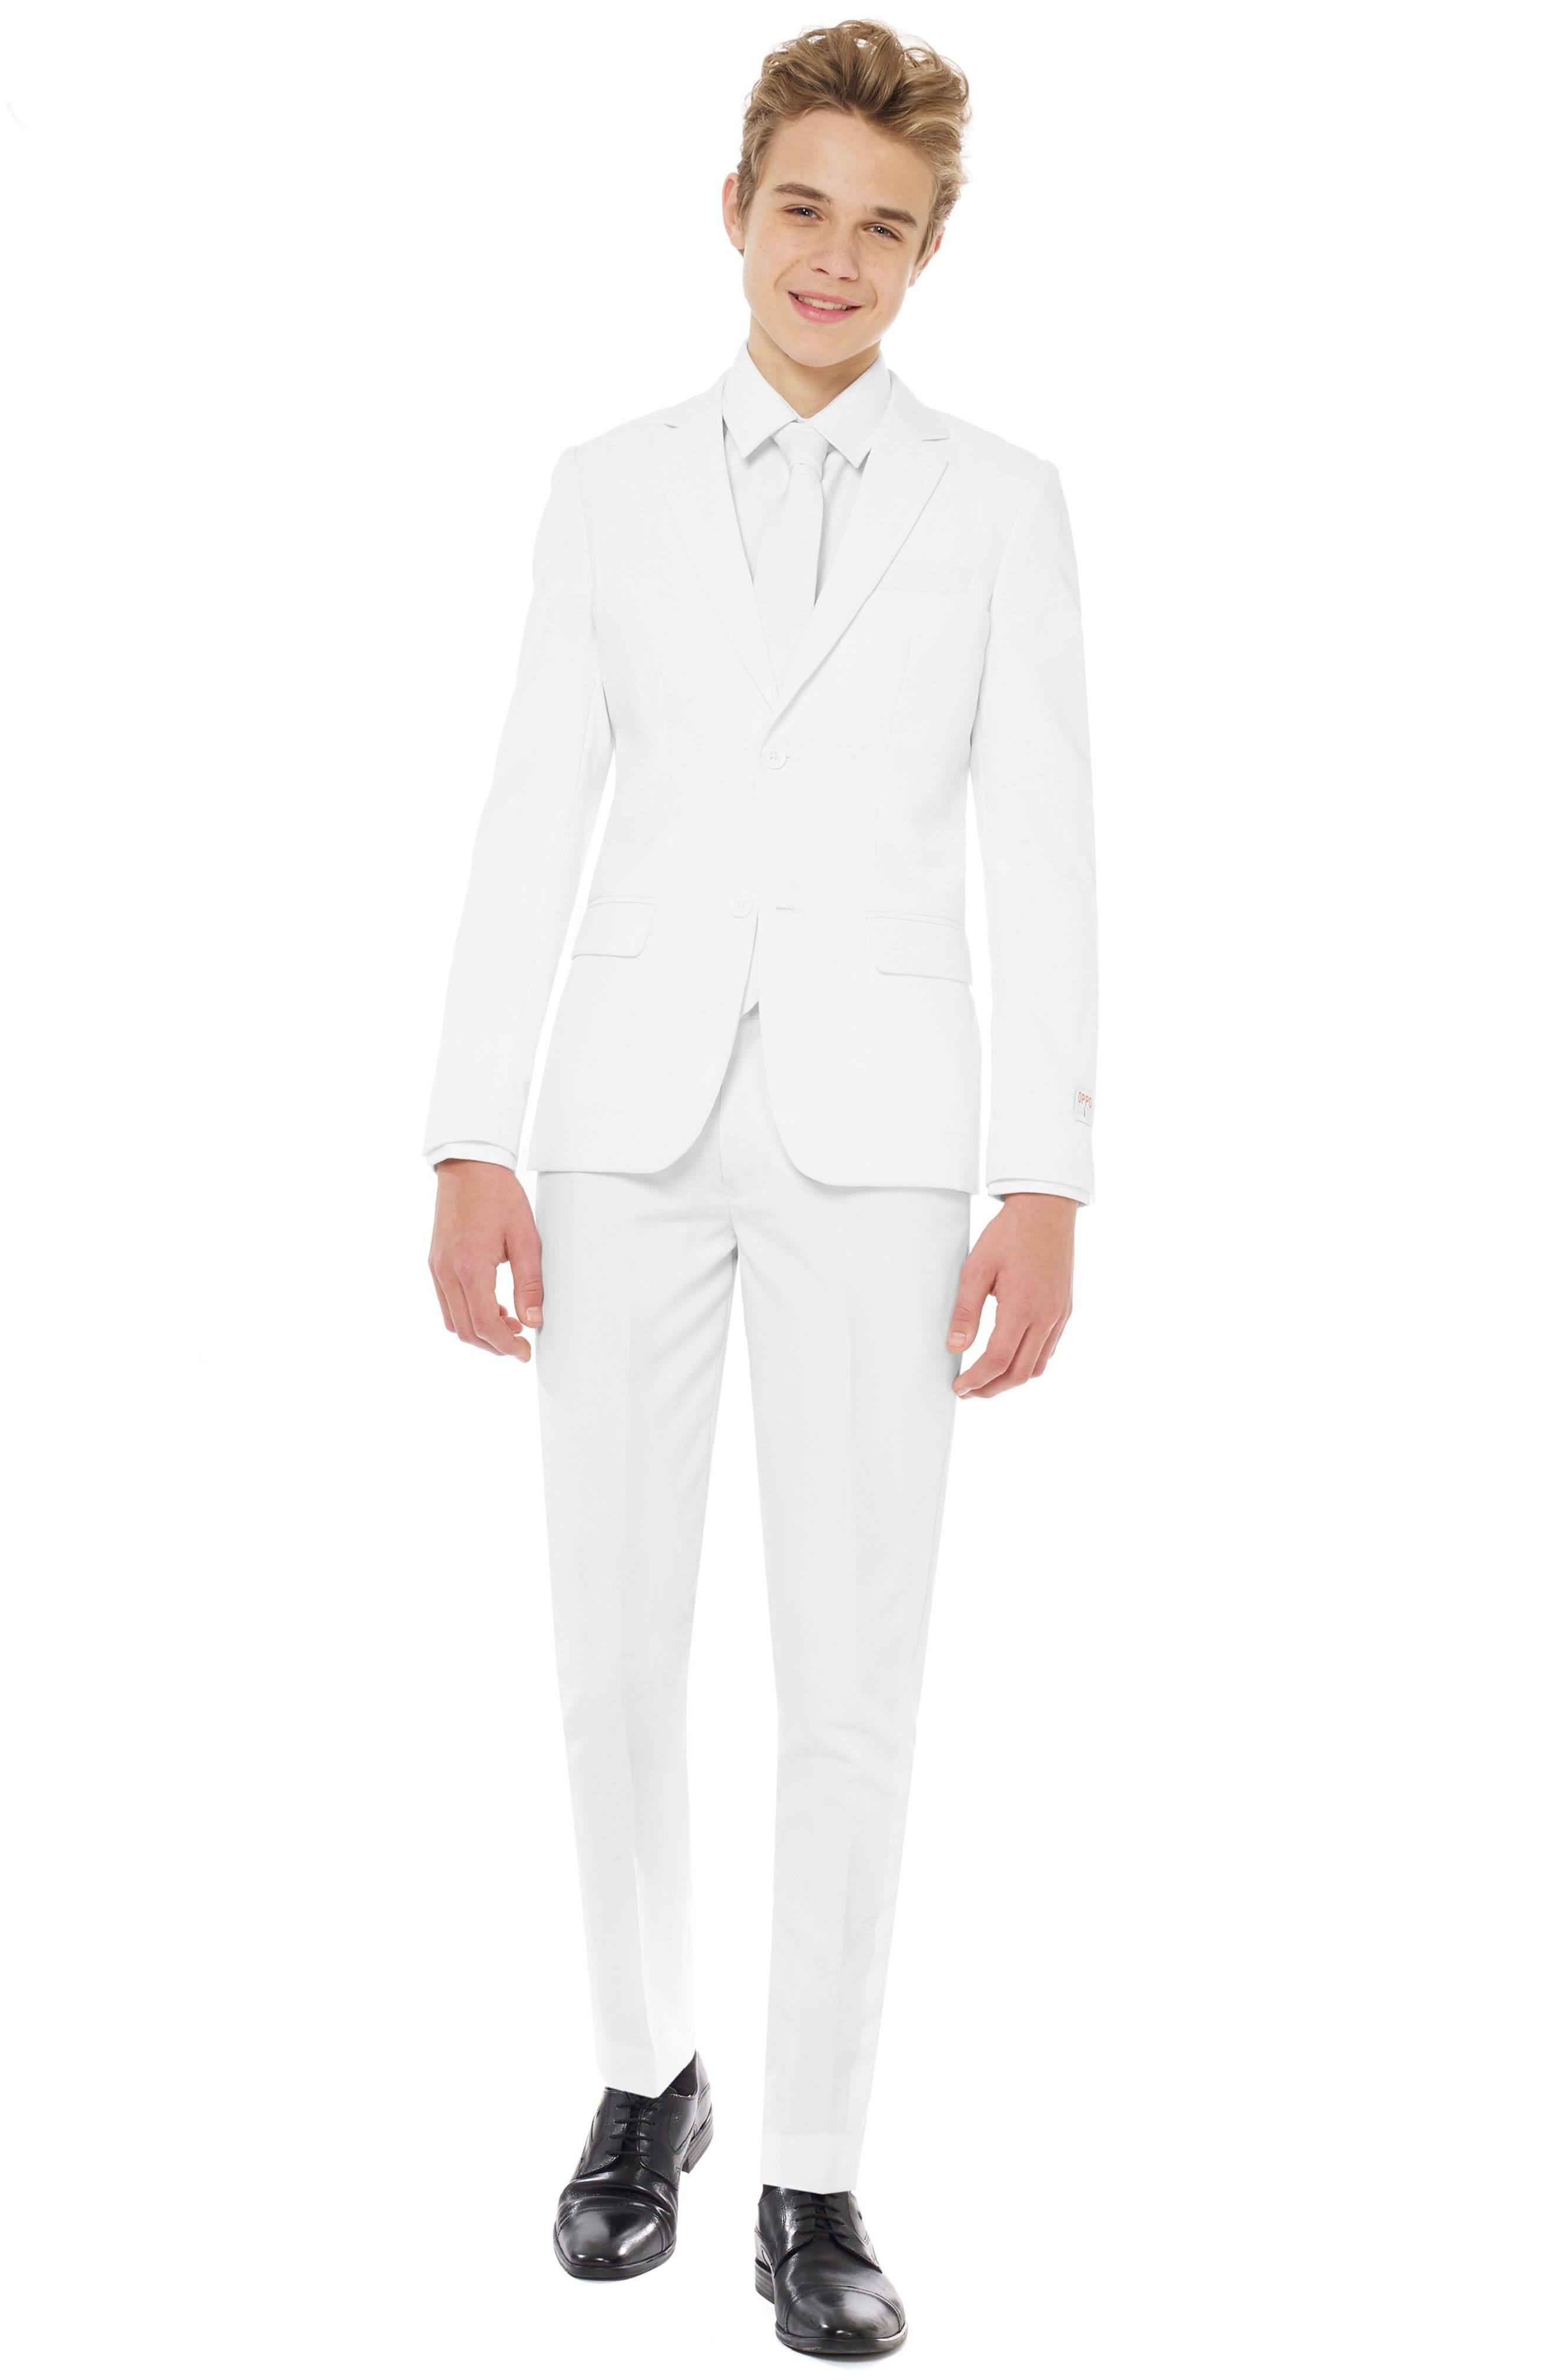 Boys Opposuits White Knight TwoPiece Suit With Tie